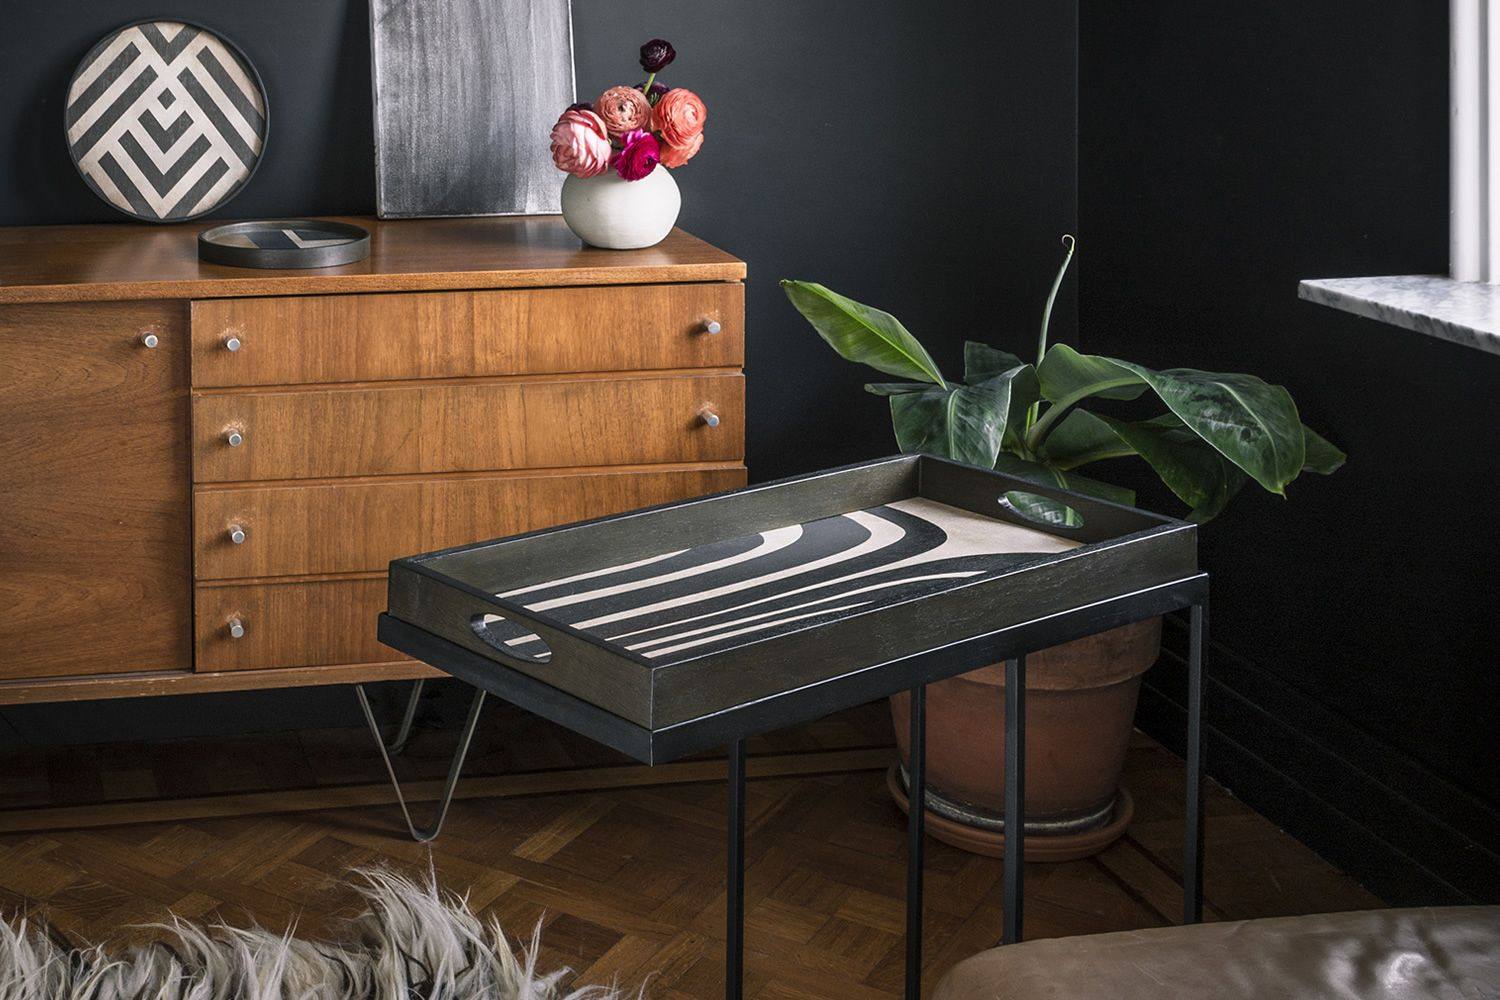 Ethnicraft coffee table, in metal and wood - with Graphite Curves model tray